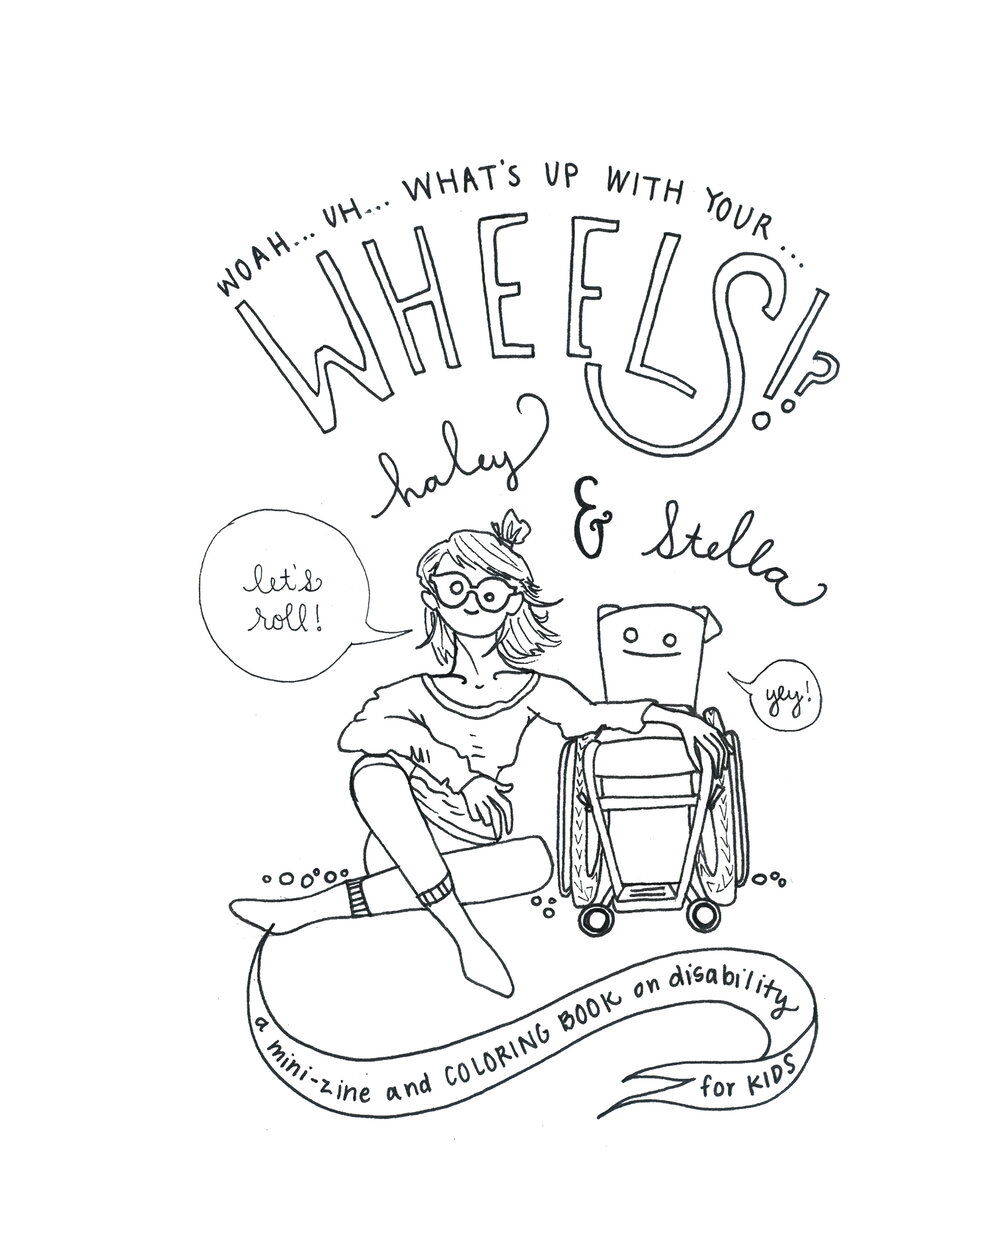 Free Wheels Downloadable Zine Coloring Book Haley Brown Coloring Books Zine Book Print